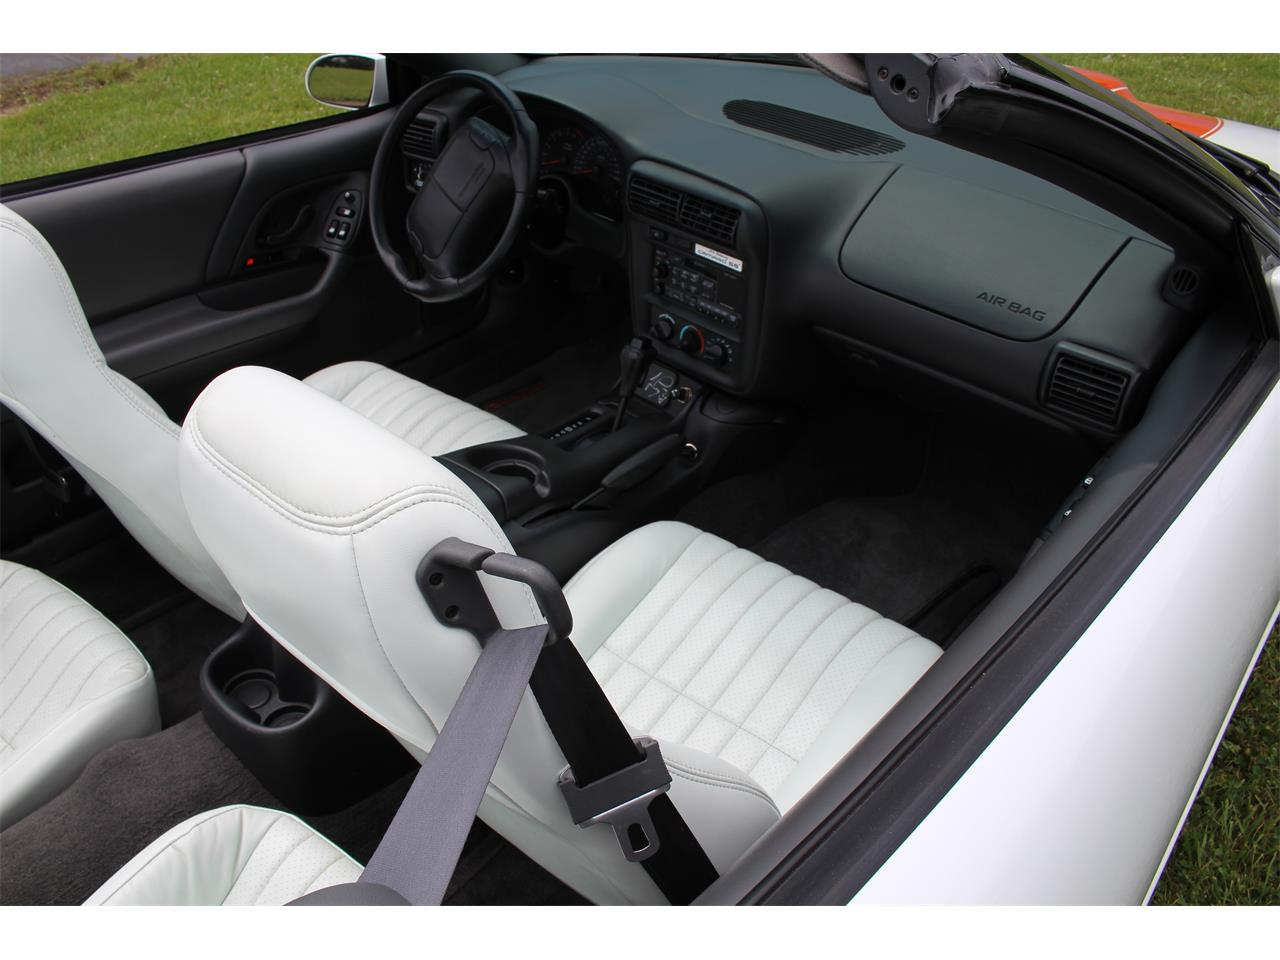 Large Picture of '97 Camaro RS/SS - $21,900.00 Offered by a Private Seller - MZ9G